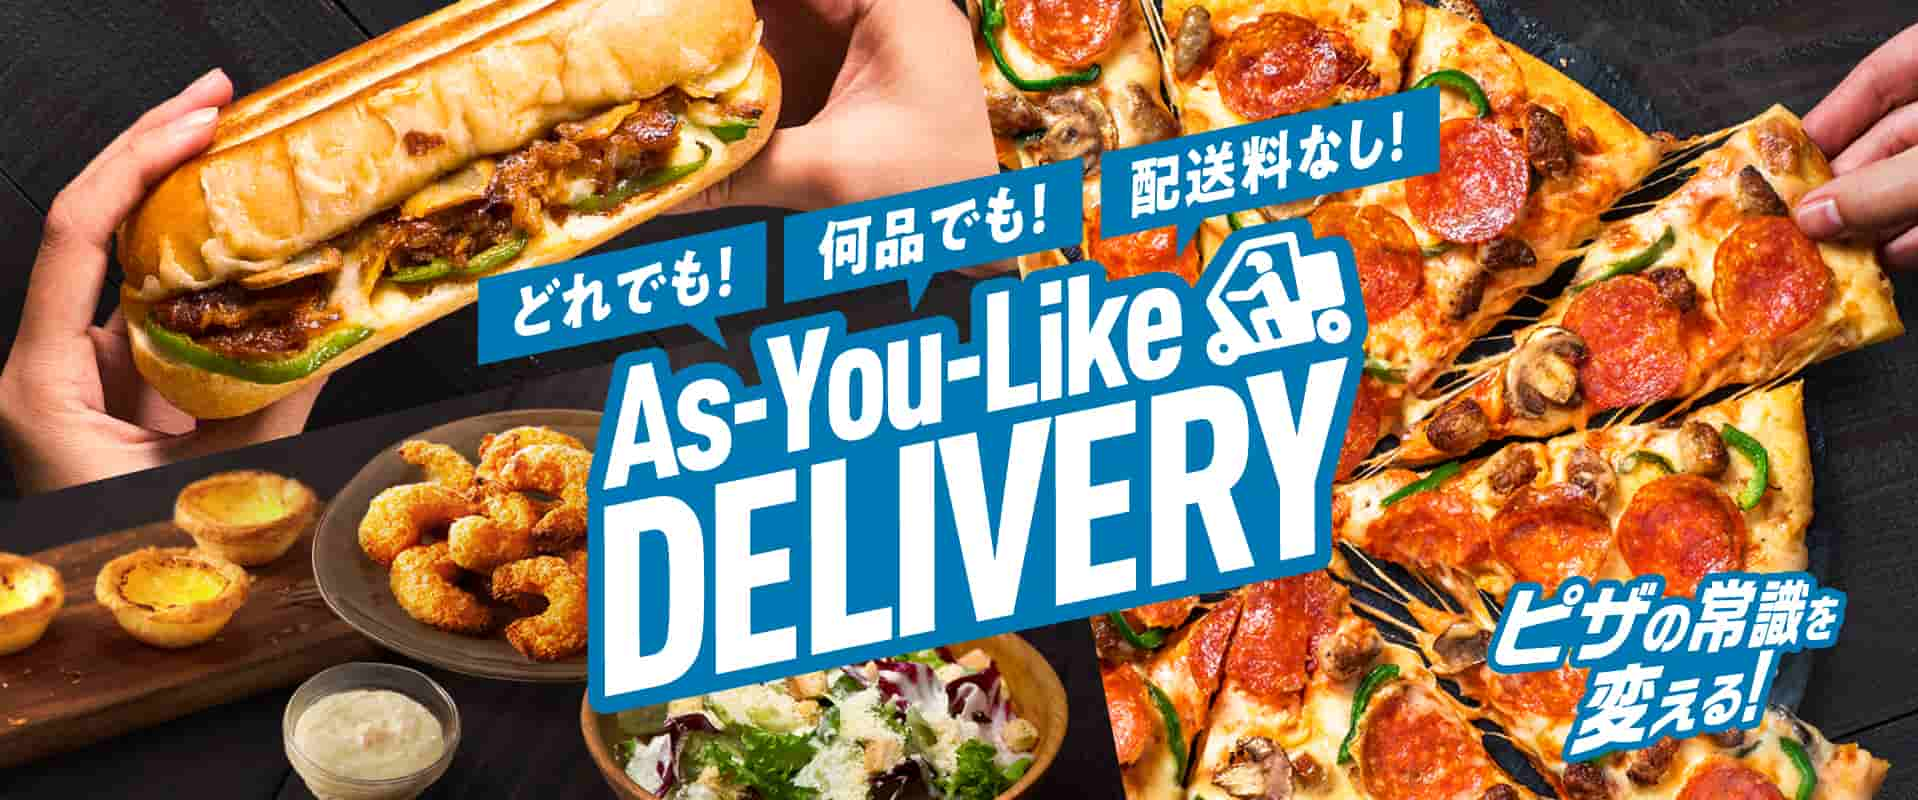 As-You-Like DELIVERY